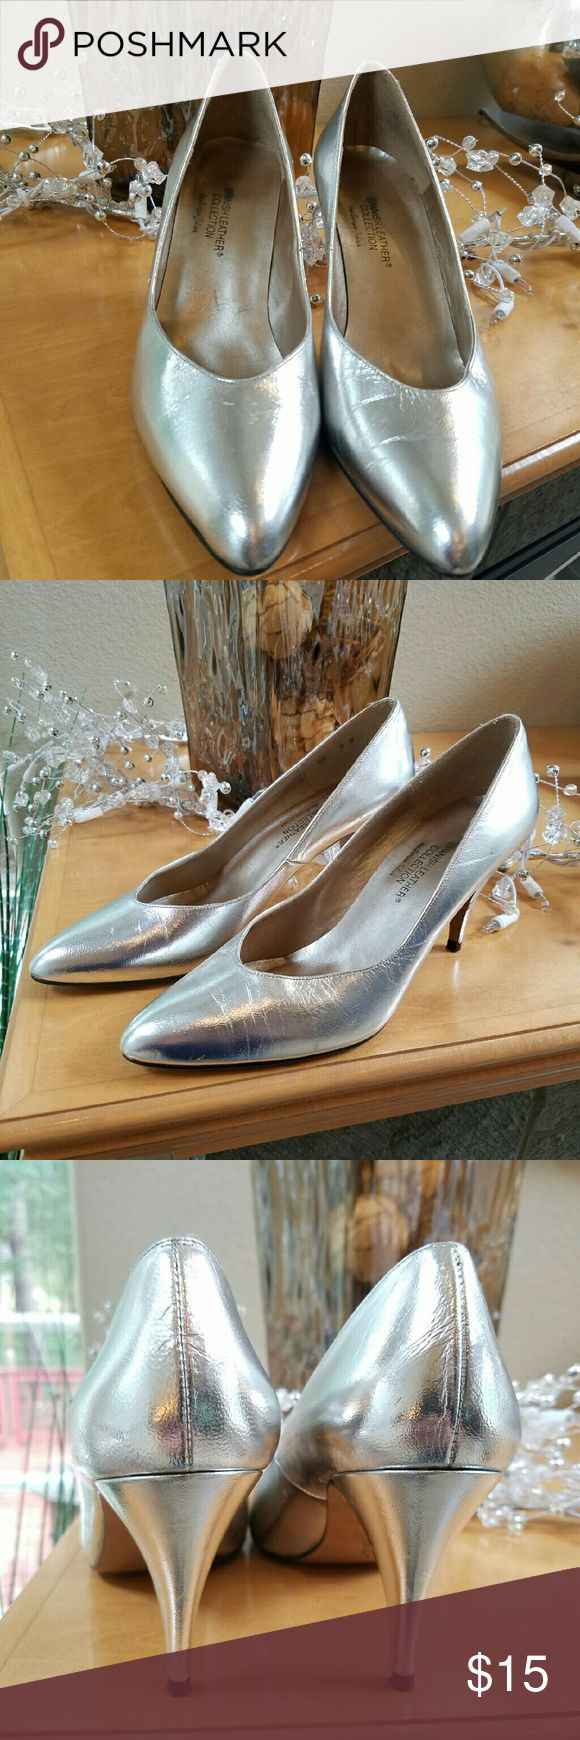 Spanish Leather Silver Metallic Heels Size 8 These Spanish Leather pumps by Sergio Zelcer are metallic silver and have a 3.5 inch heel perfect for your holiday outfits.  The uppers and heels are in great condition with just minor wear on the soles as shown. Spanish Leather Shoes Heels